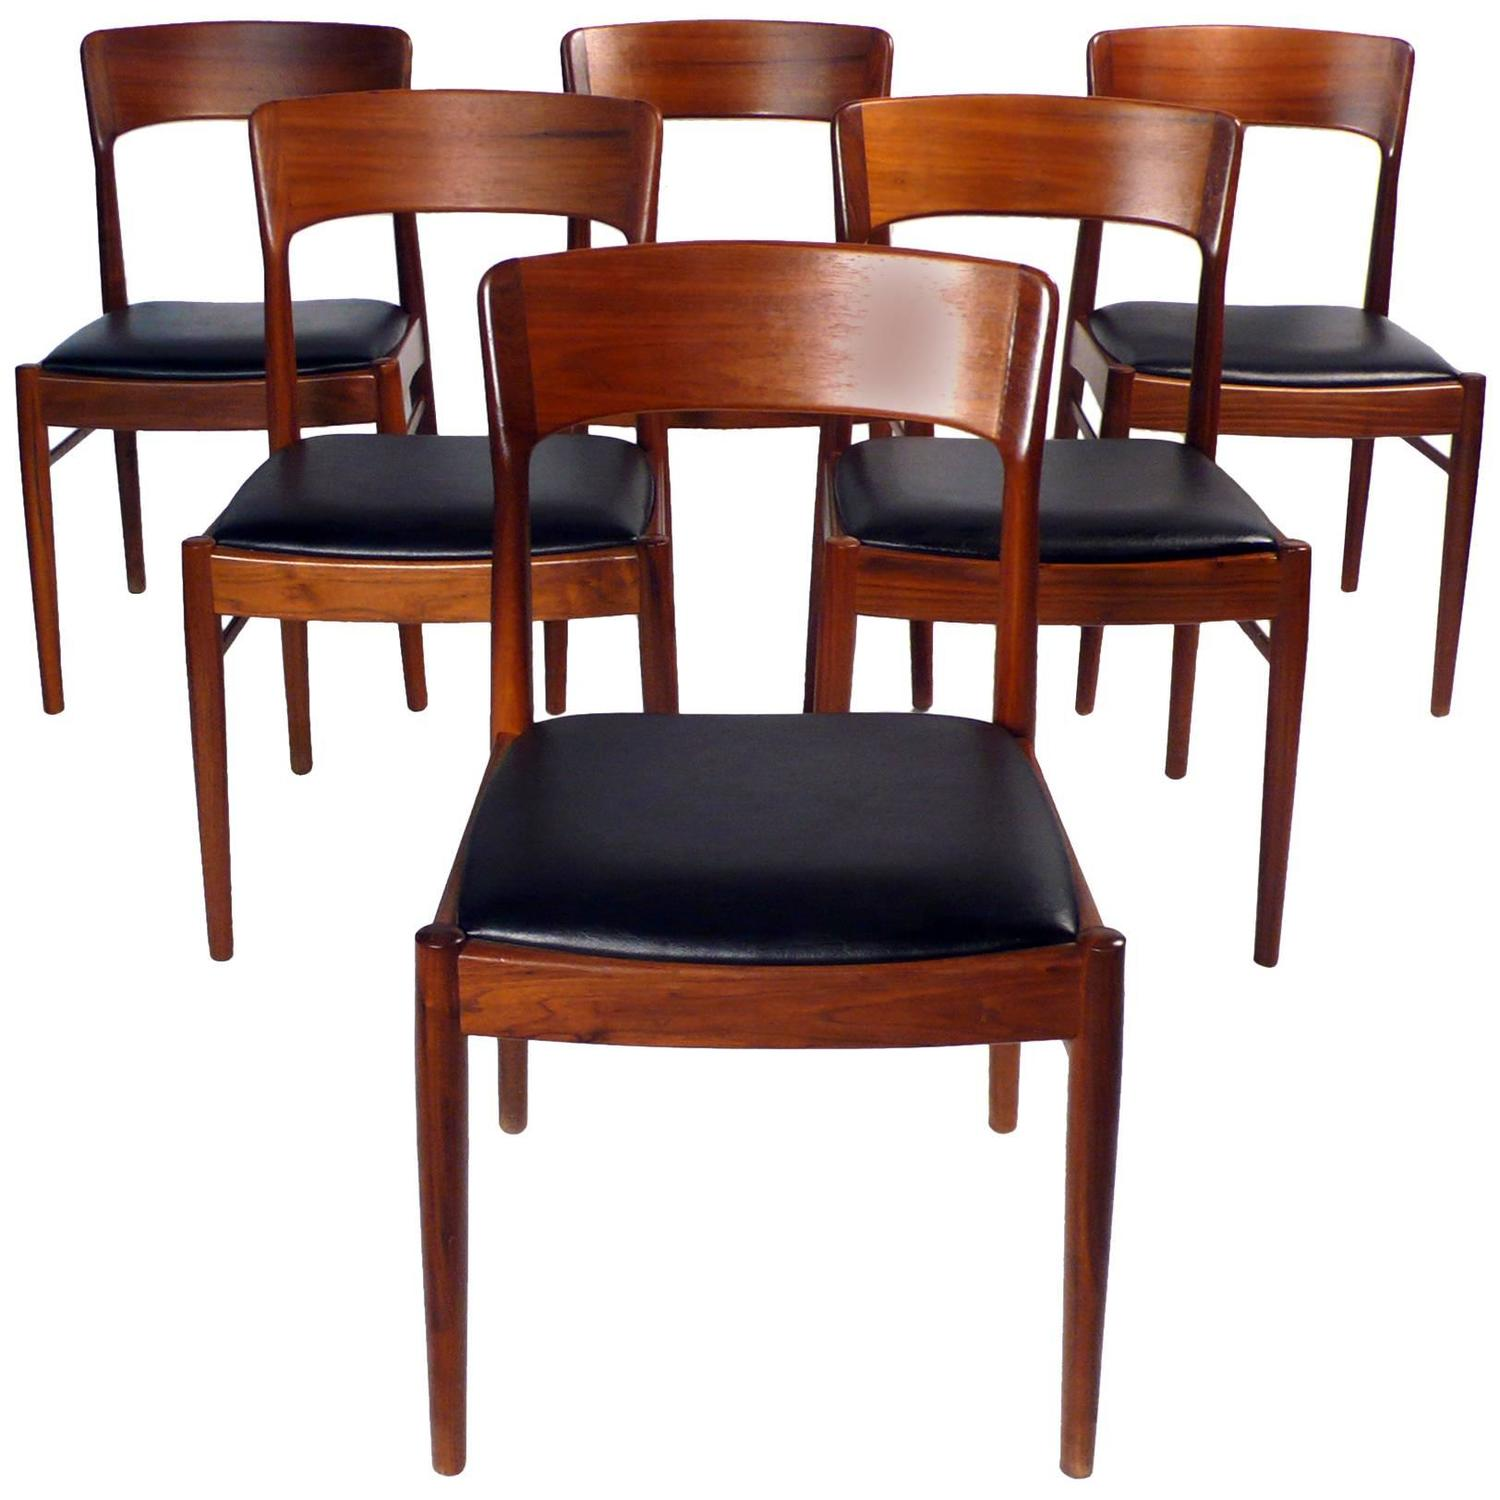 Dining Room Furniture Sale: KS Danish Dining Chairs For Sale At 1stdibs